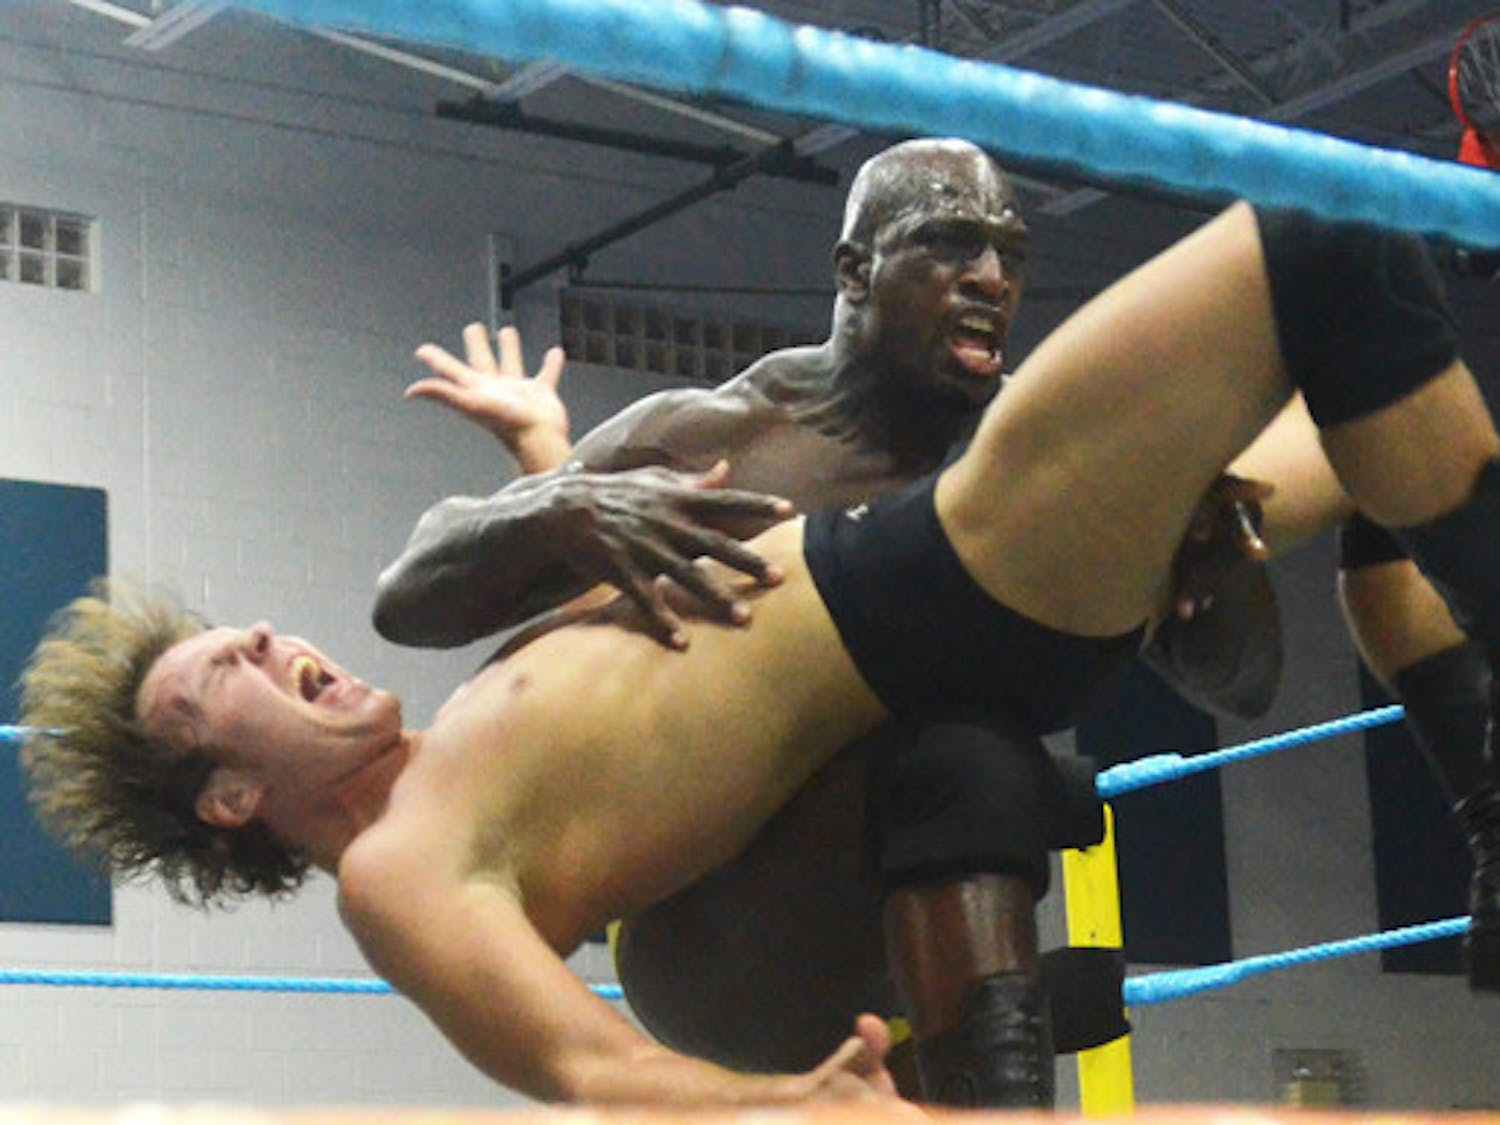 Titus O'Neil, whose real name is Thaddeus Bullard, hits Dean Ambrose with a back breaker at FCW Summer Slamarama at the Martin Luther King Jr. Multipurpose Center Friday.